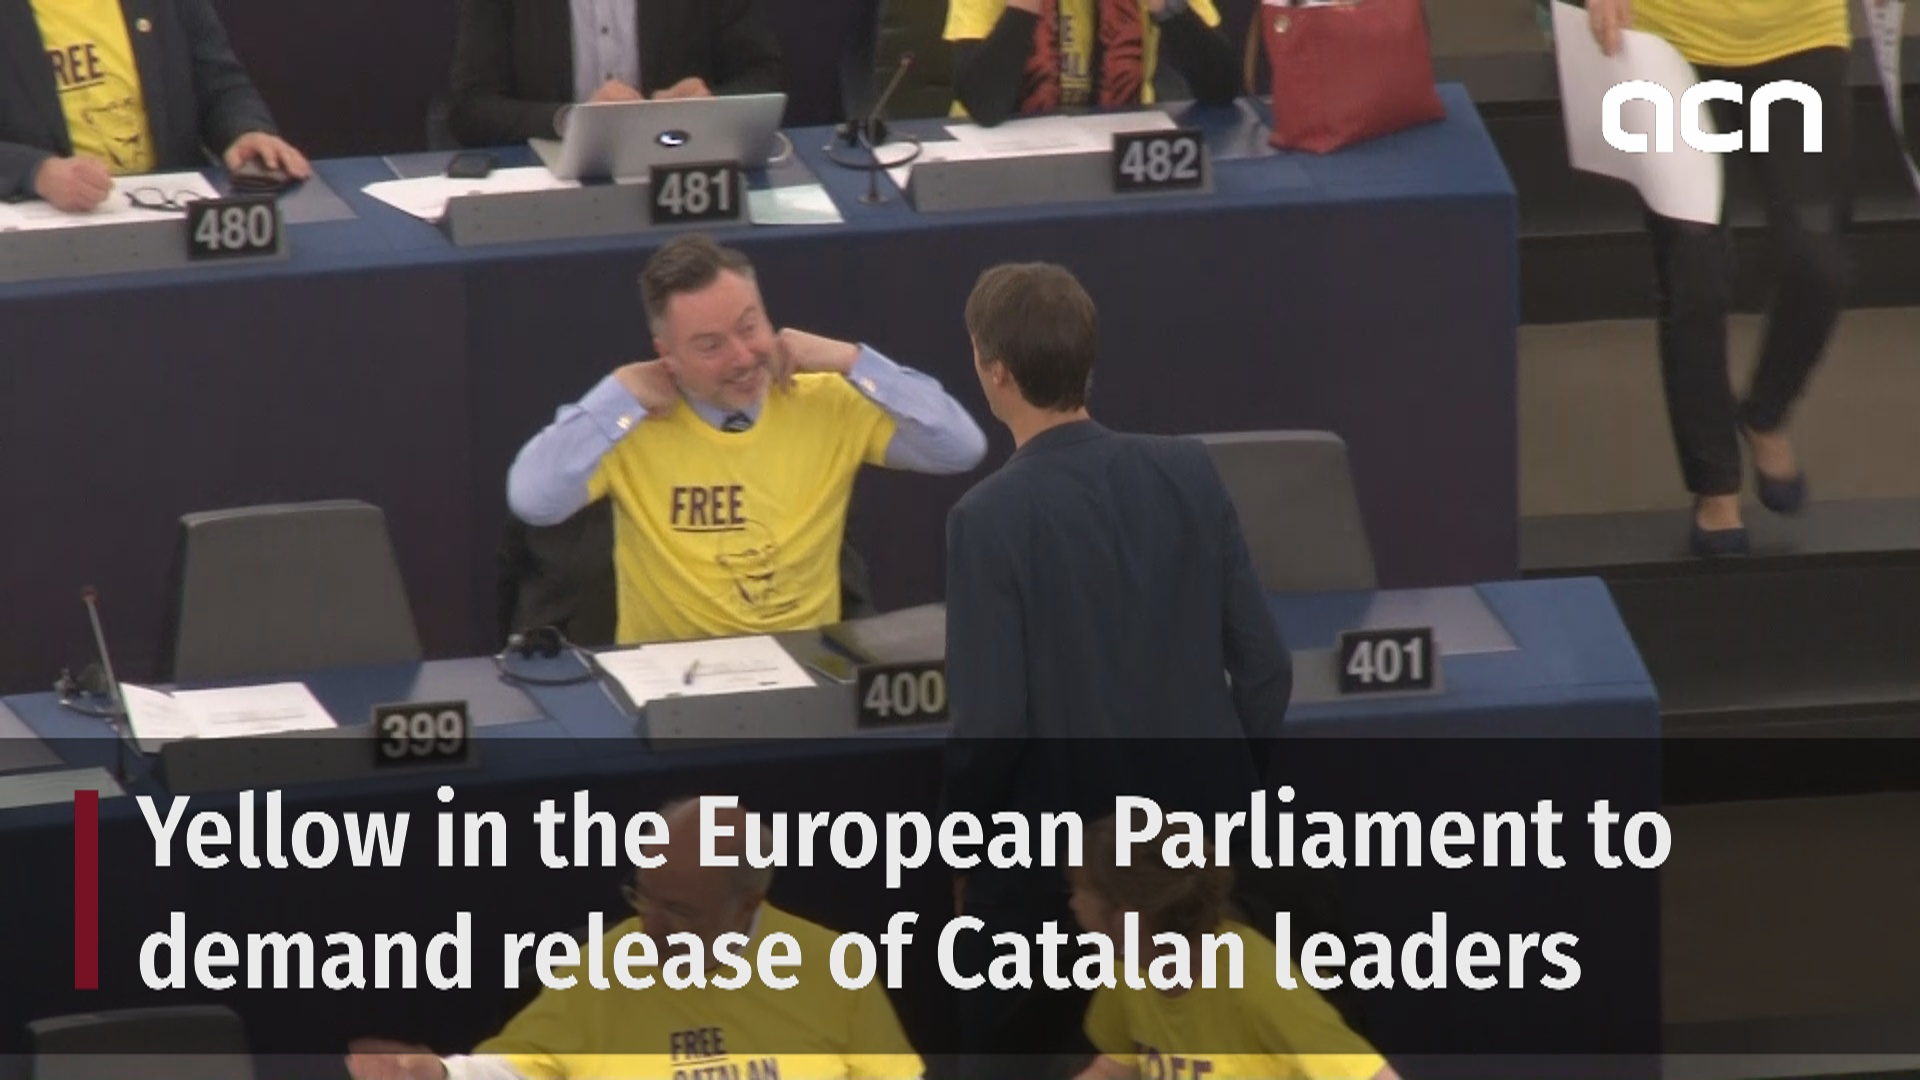 MEPs wear yellow to demand release of Catalan leaders from jail